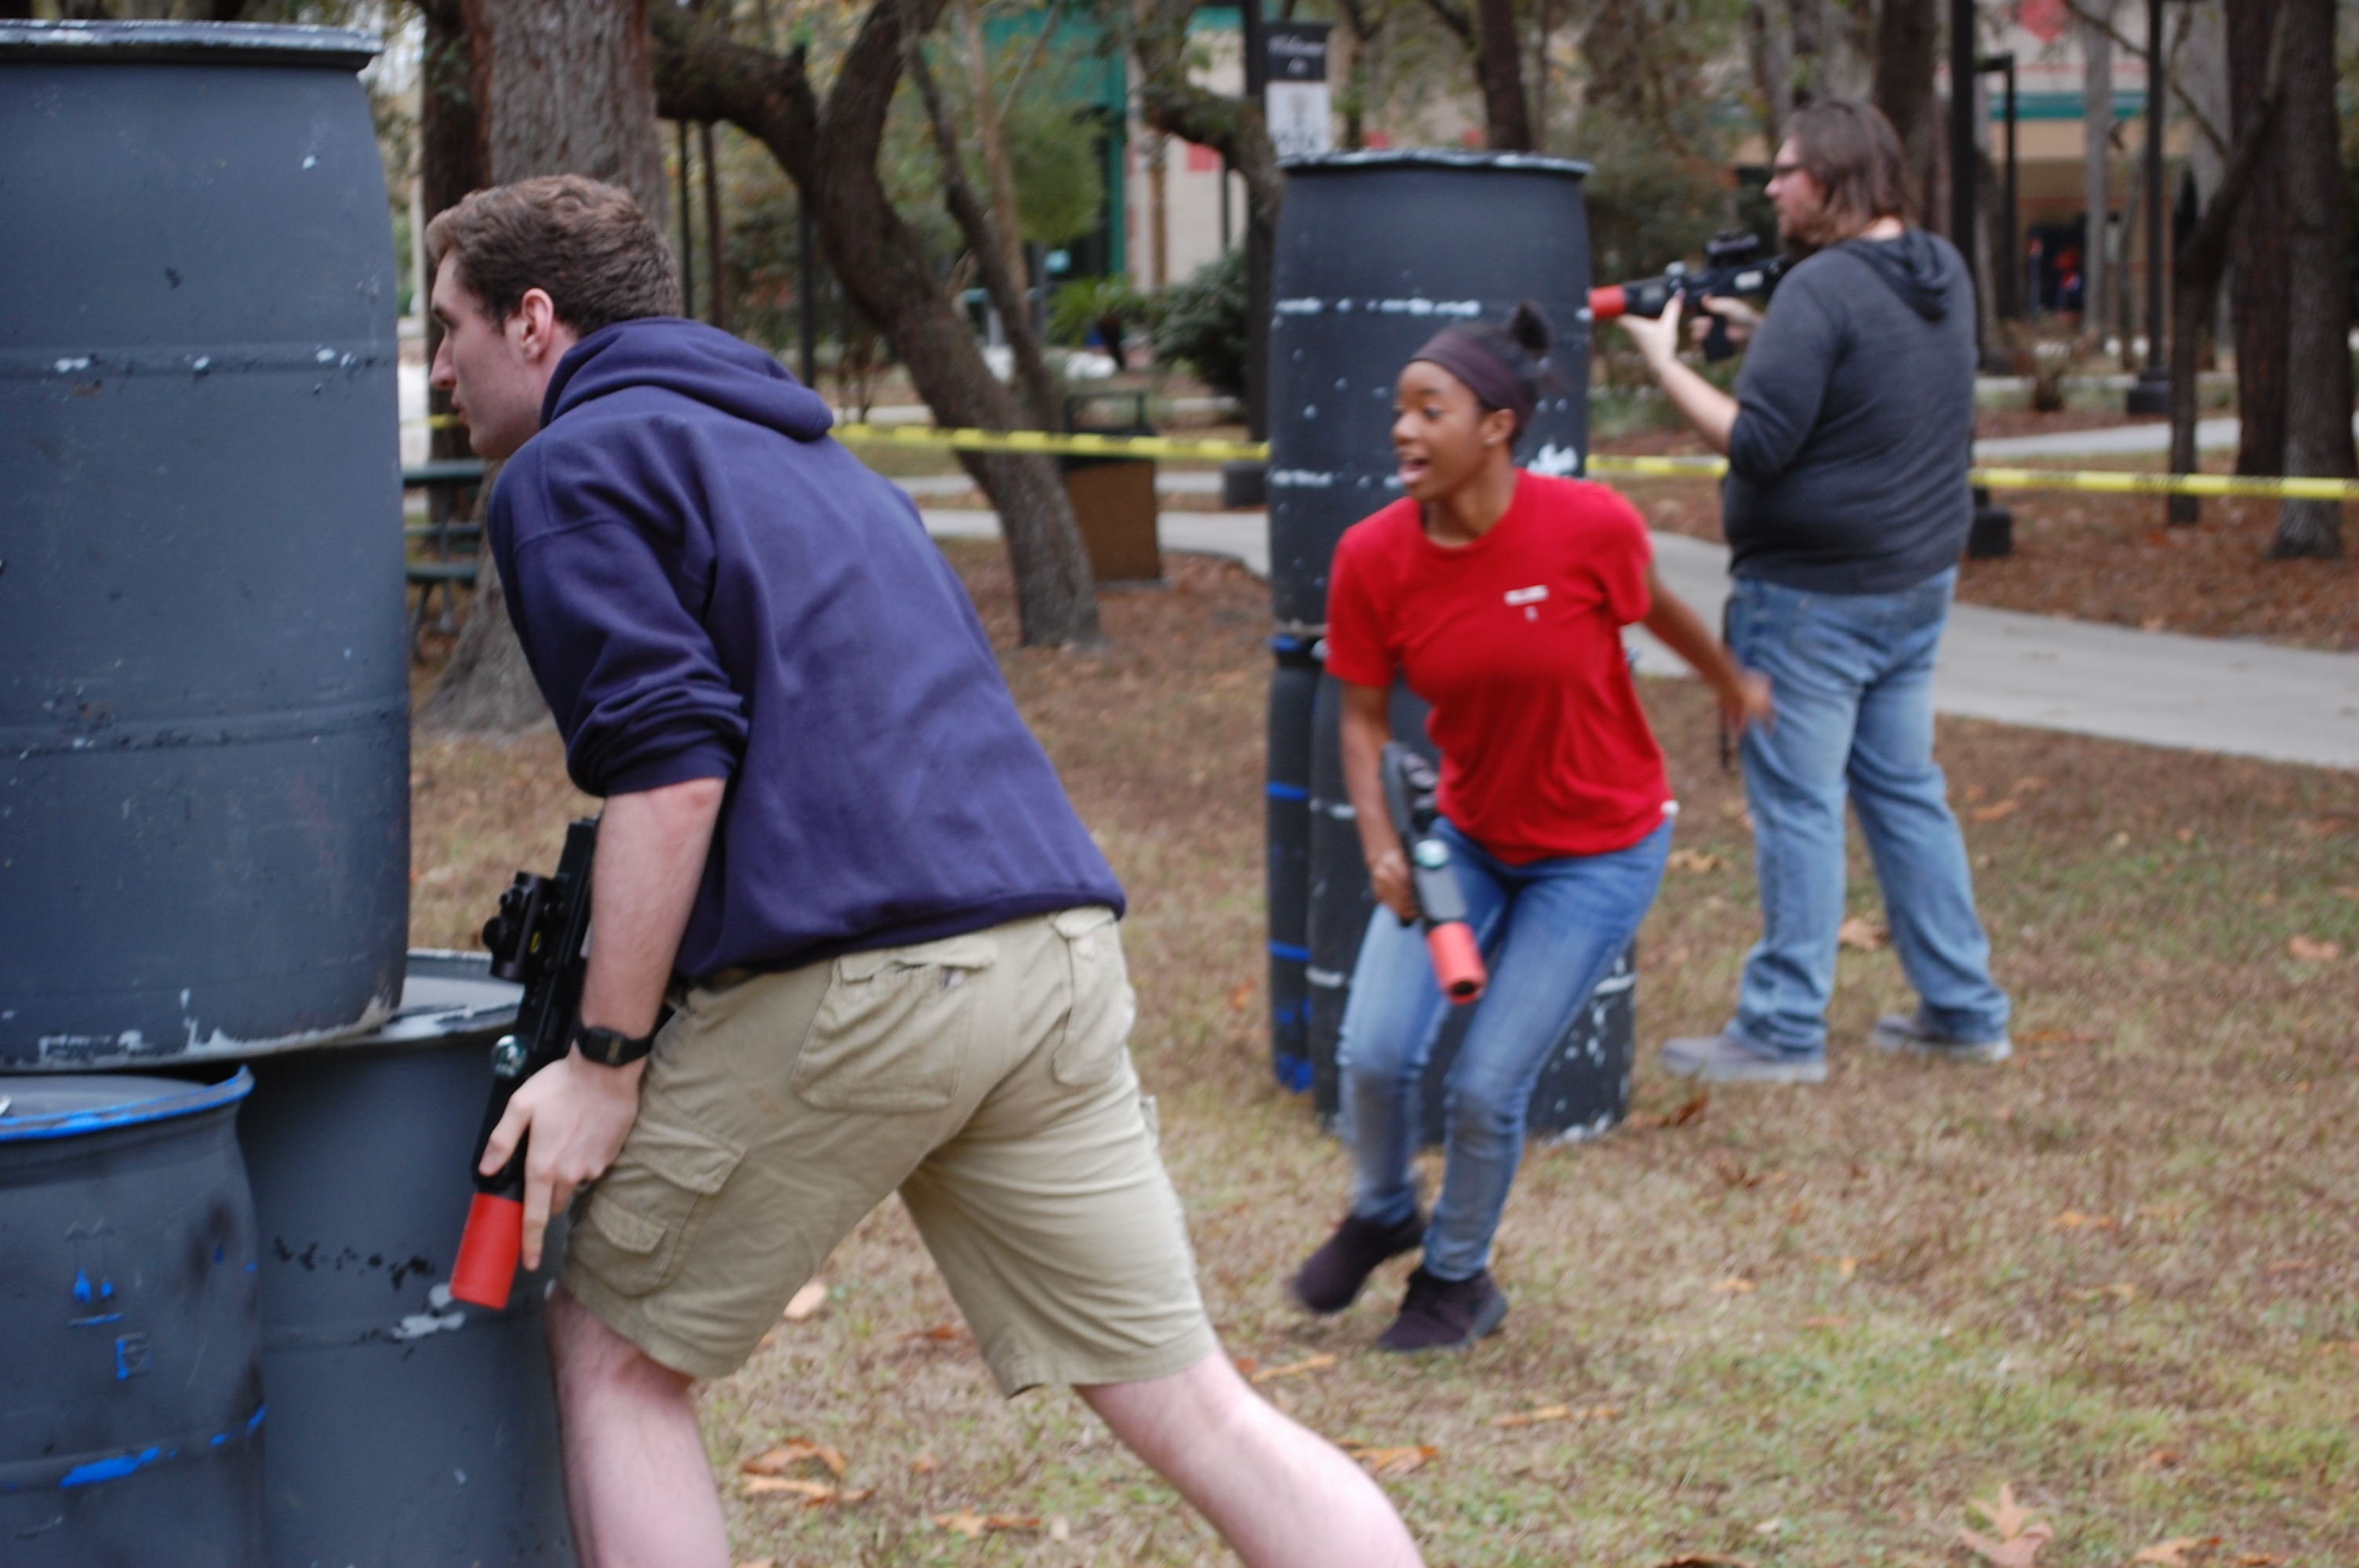 College Events in Florida - Stealth Mobile Laser Tag (63)